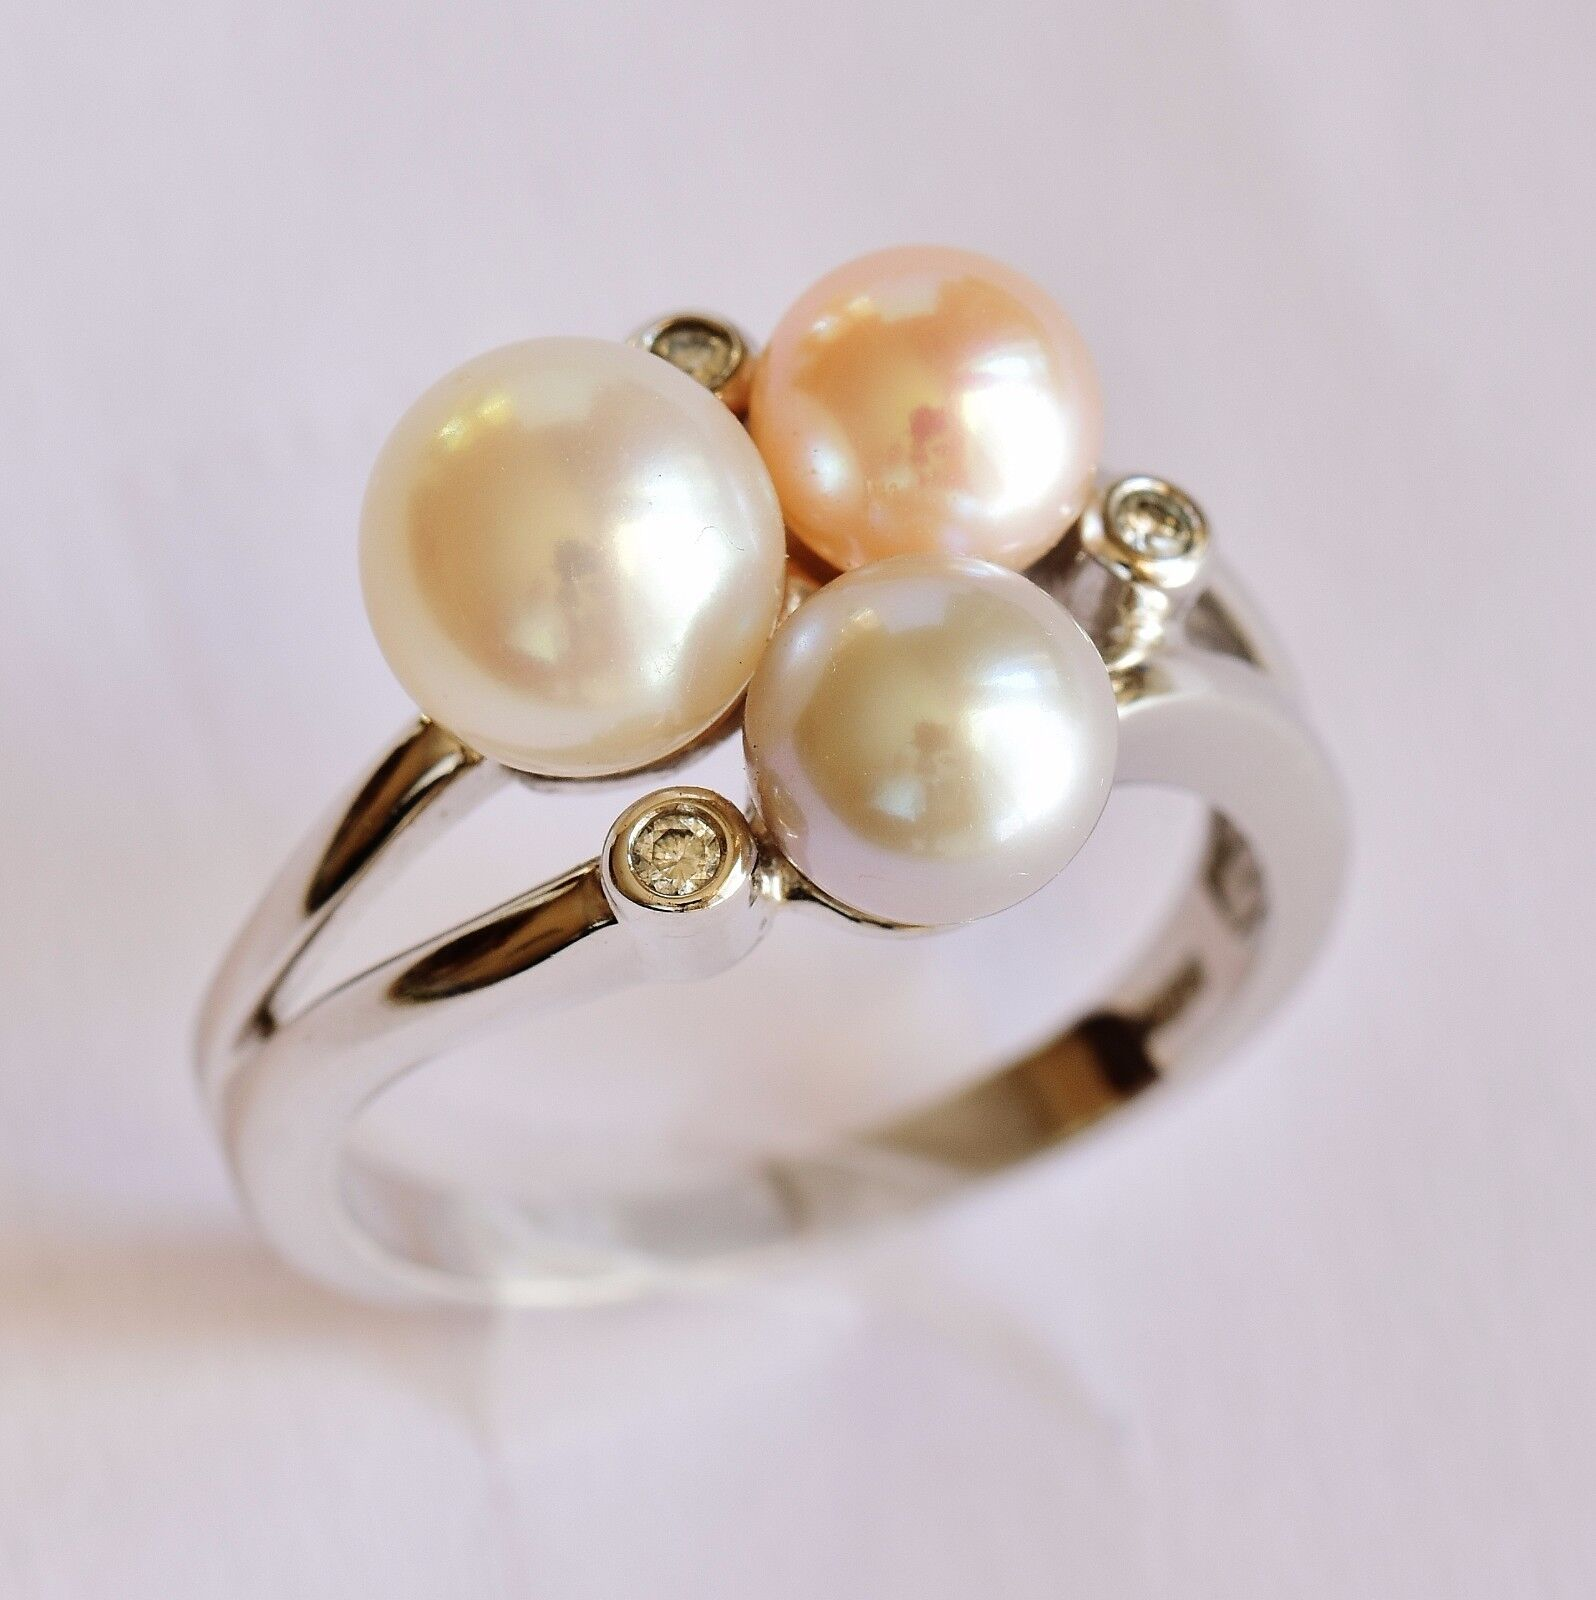 14k White Gold Genuine AAA 9.5-10mm White Cultured Pearl Diamonds Cocktail Ring